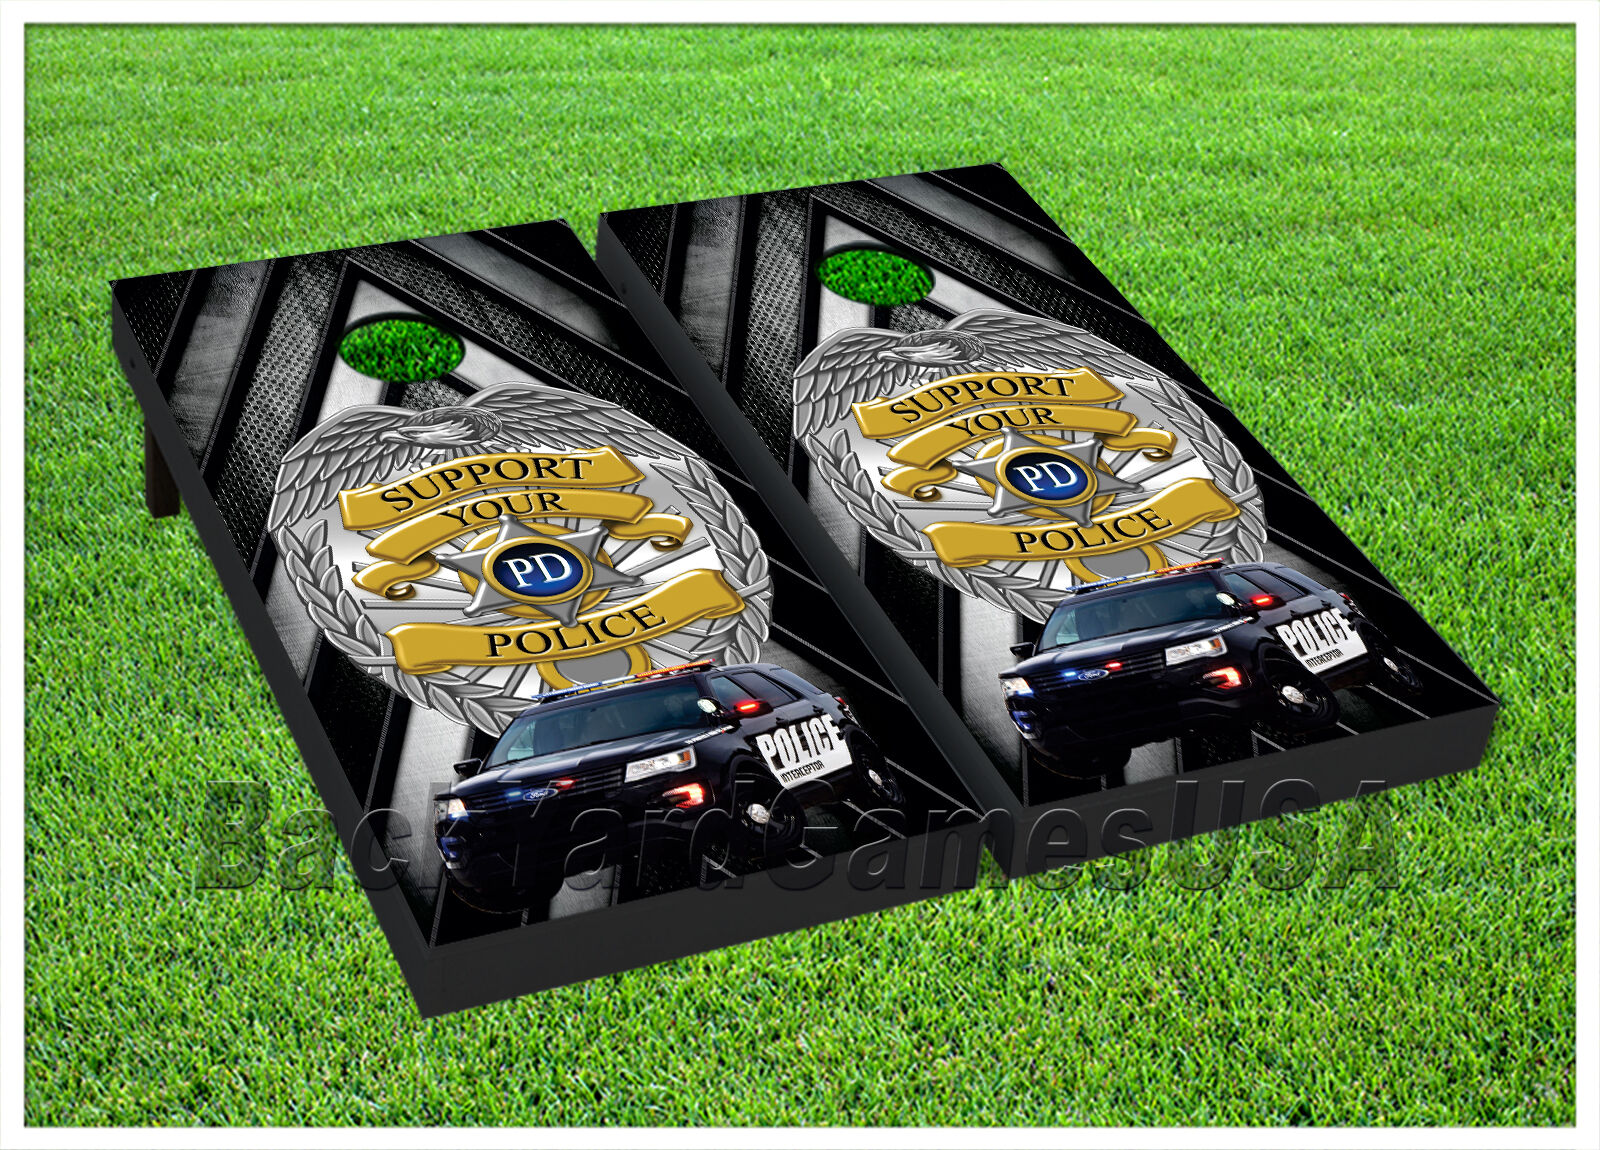 SUPPORT LOCAL  POLICE Cornhole BOARDS POLICE BEANBAG TOSS GAME w Bags Set 1401  fitness retailer